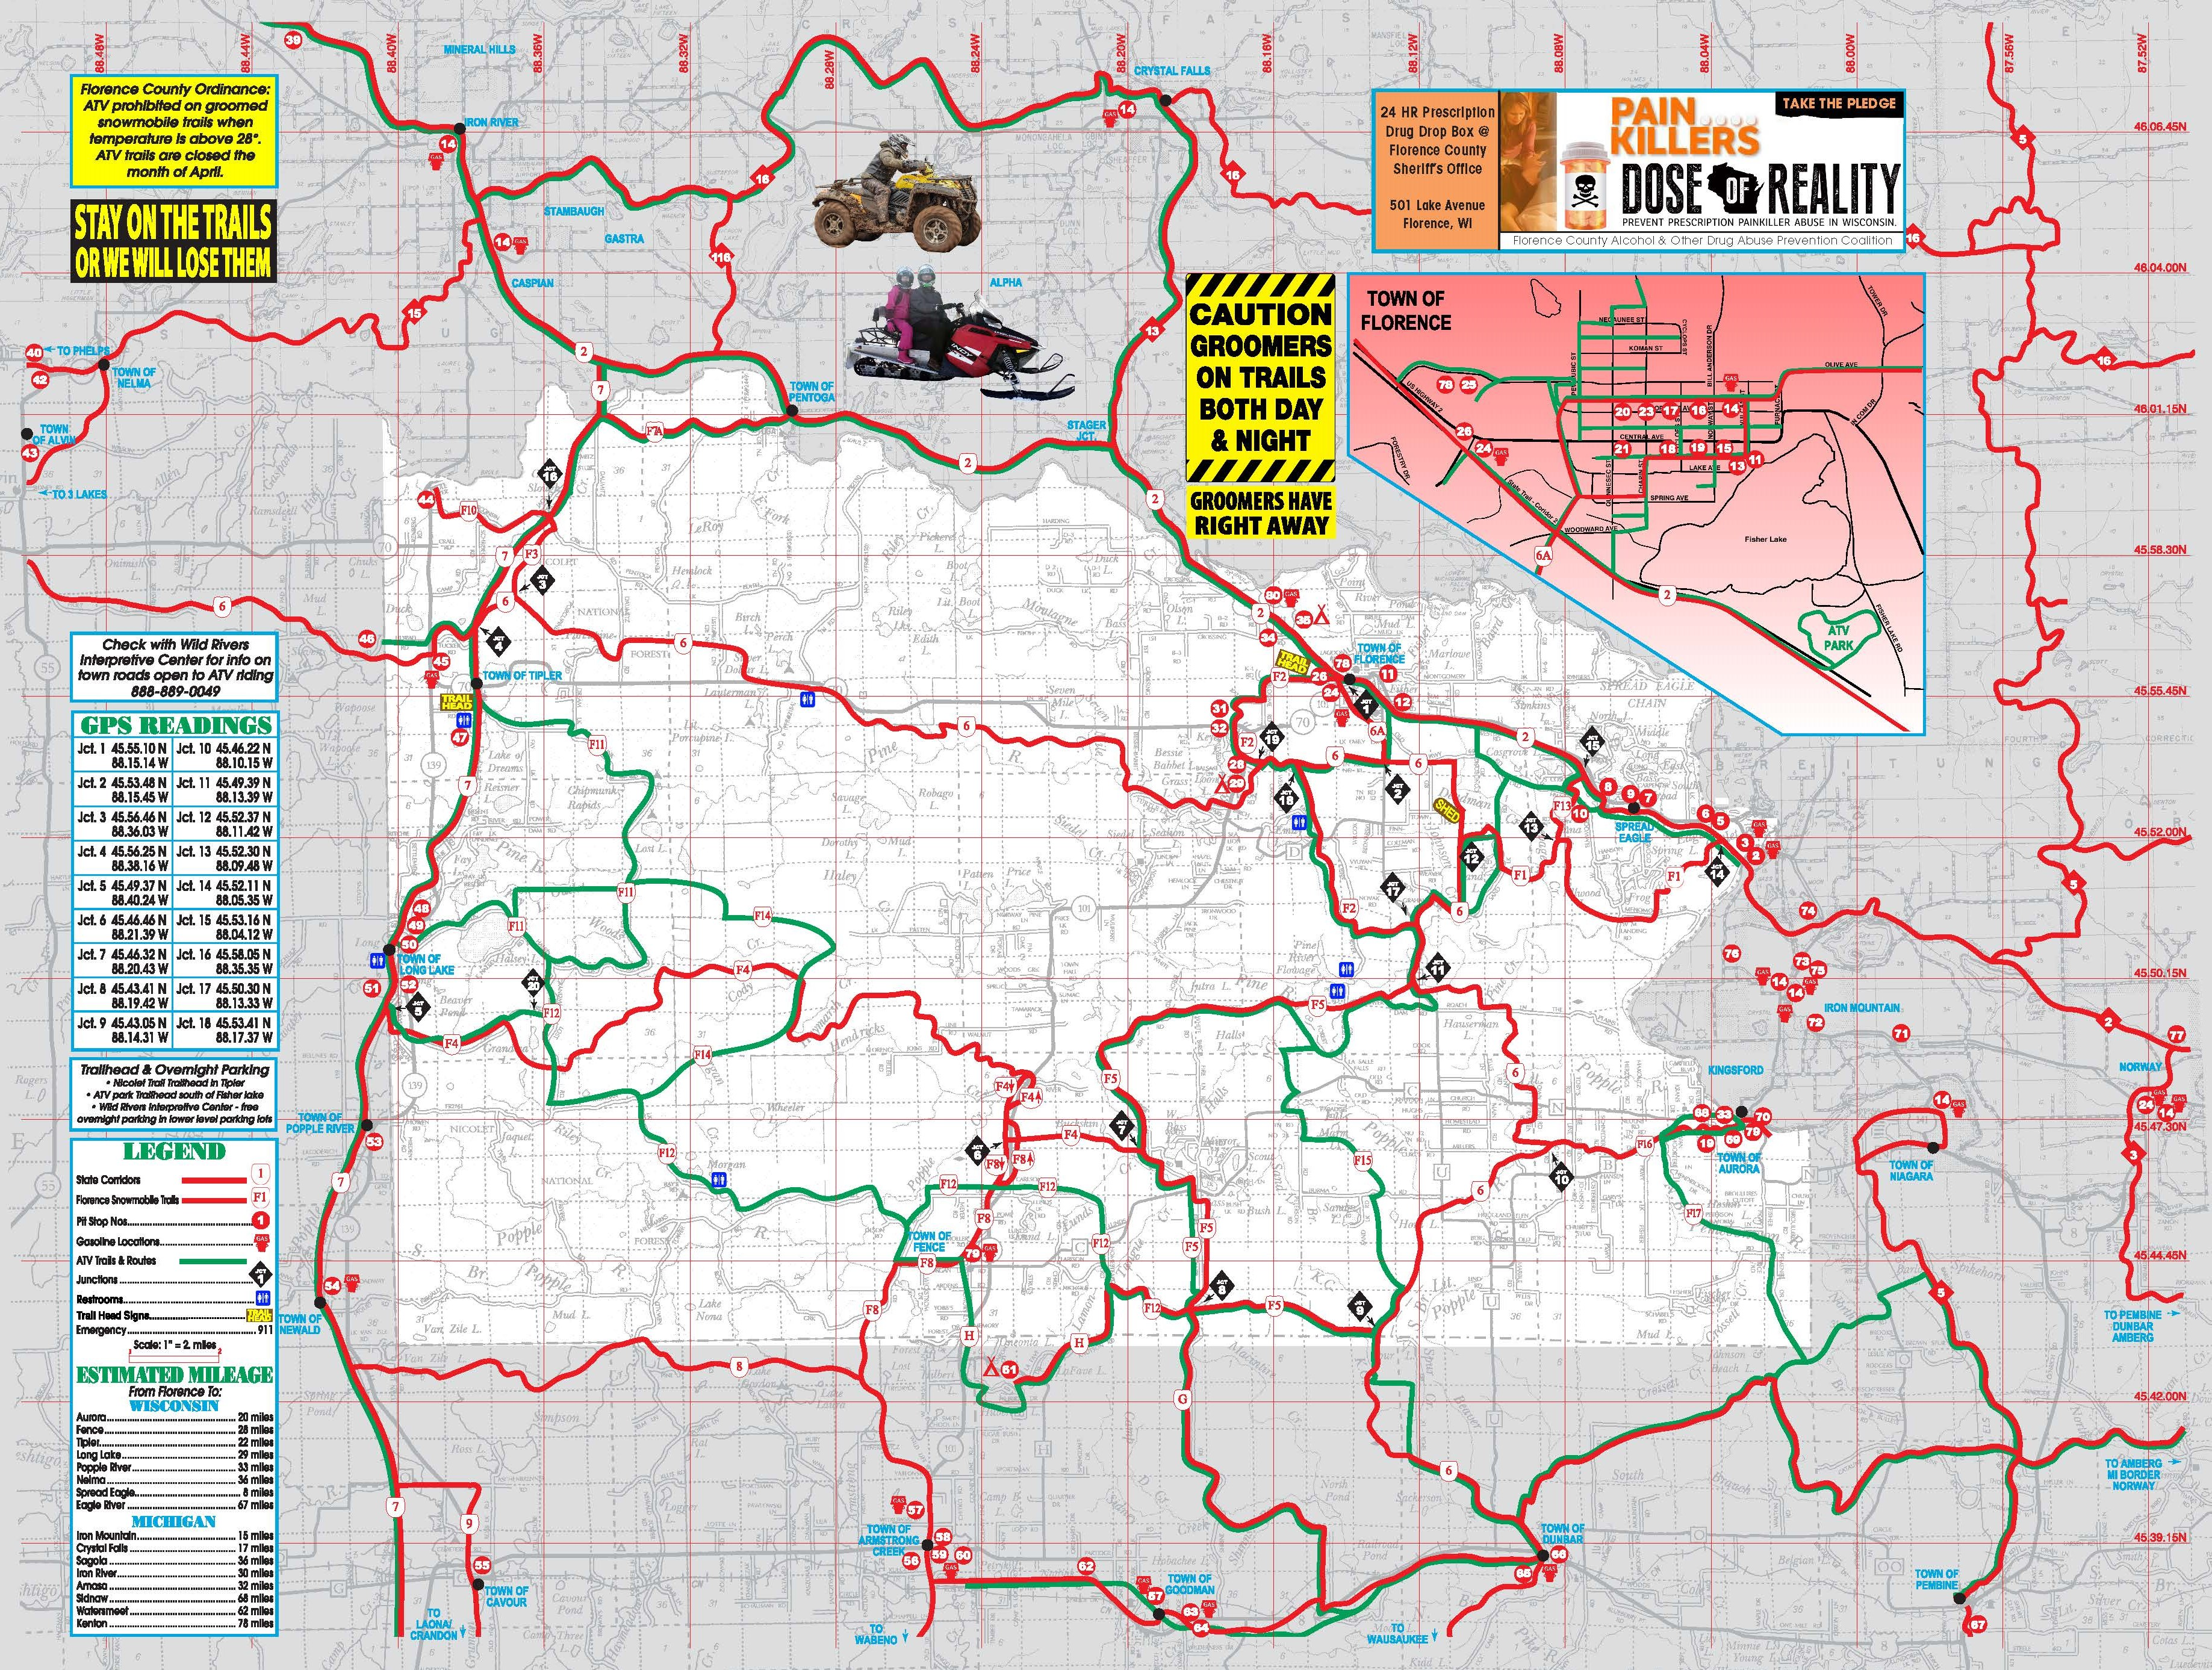 Florence County Recreation Guide Trail Maps